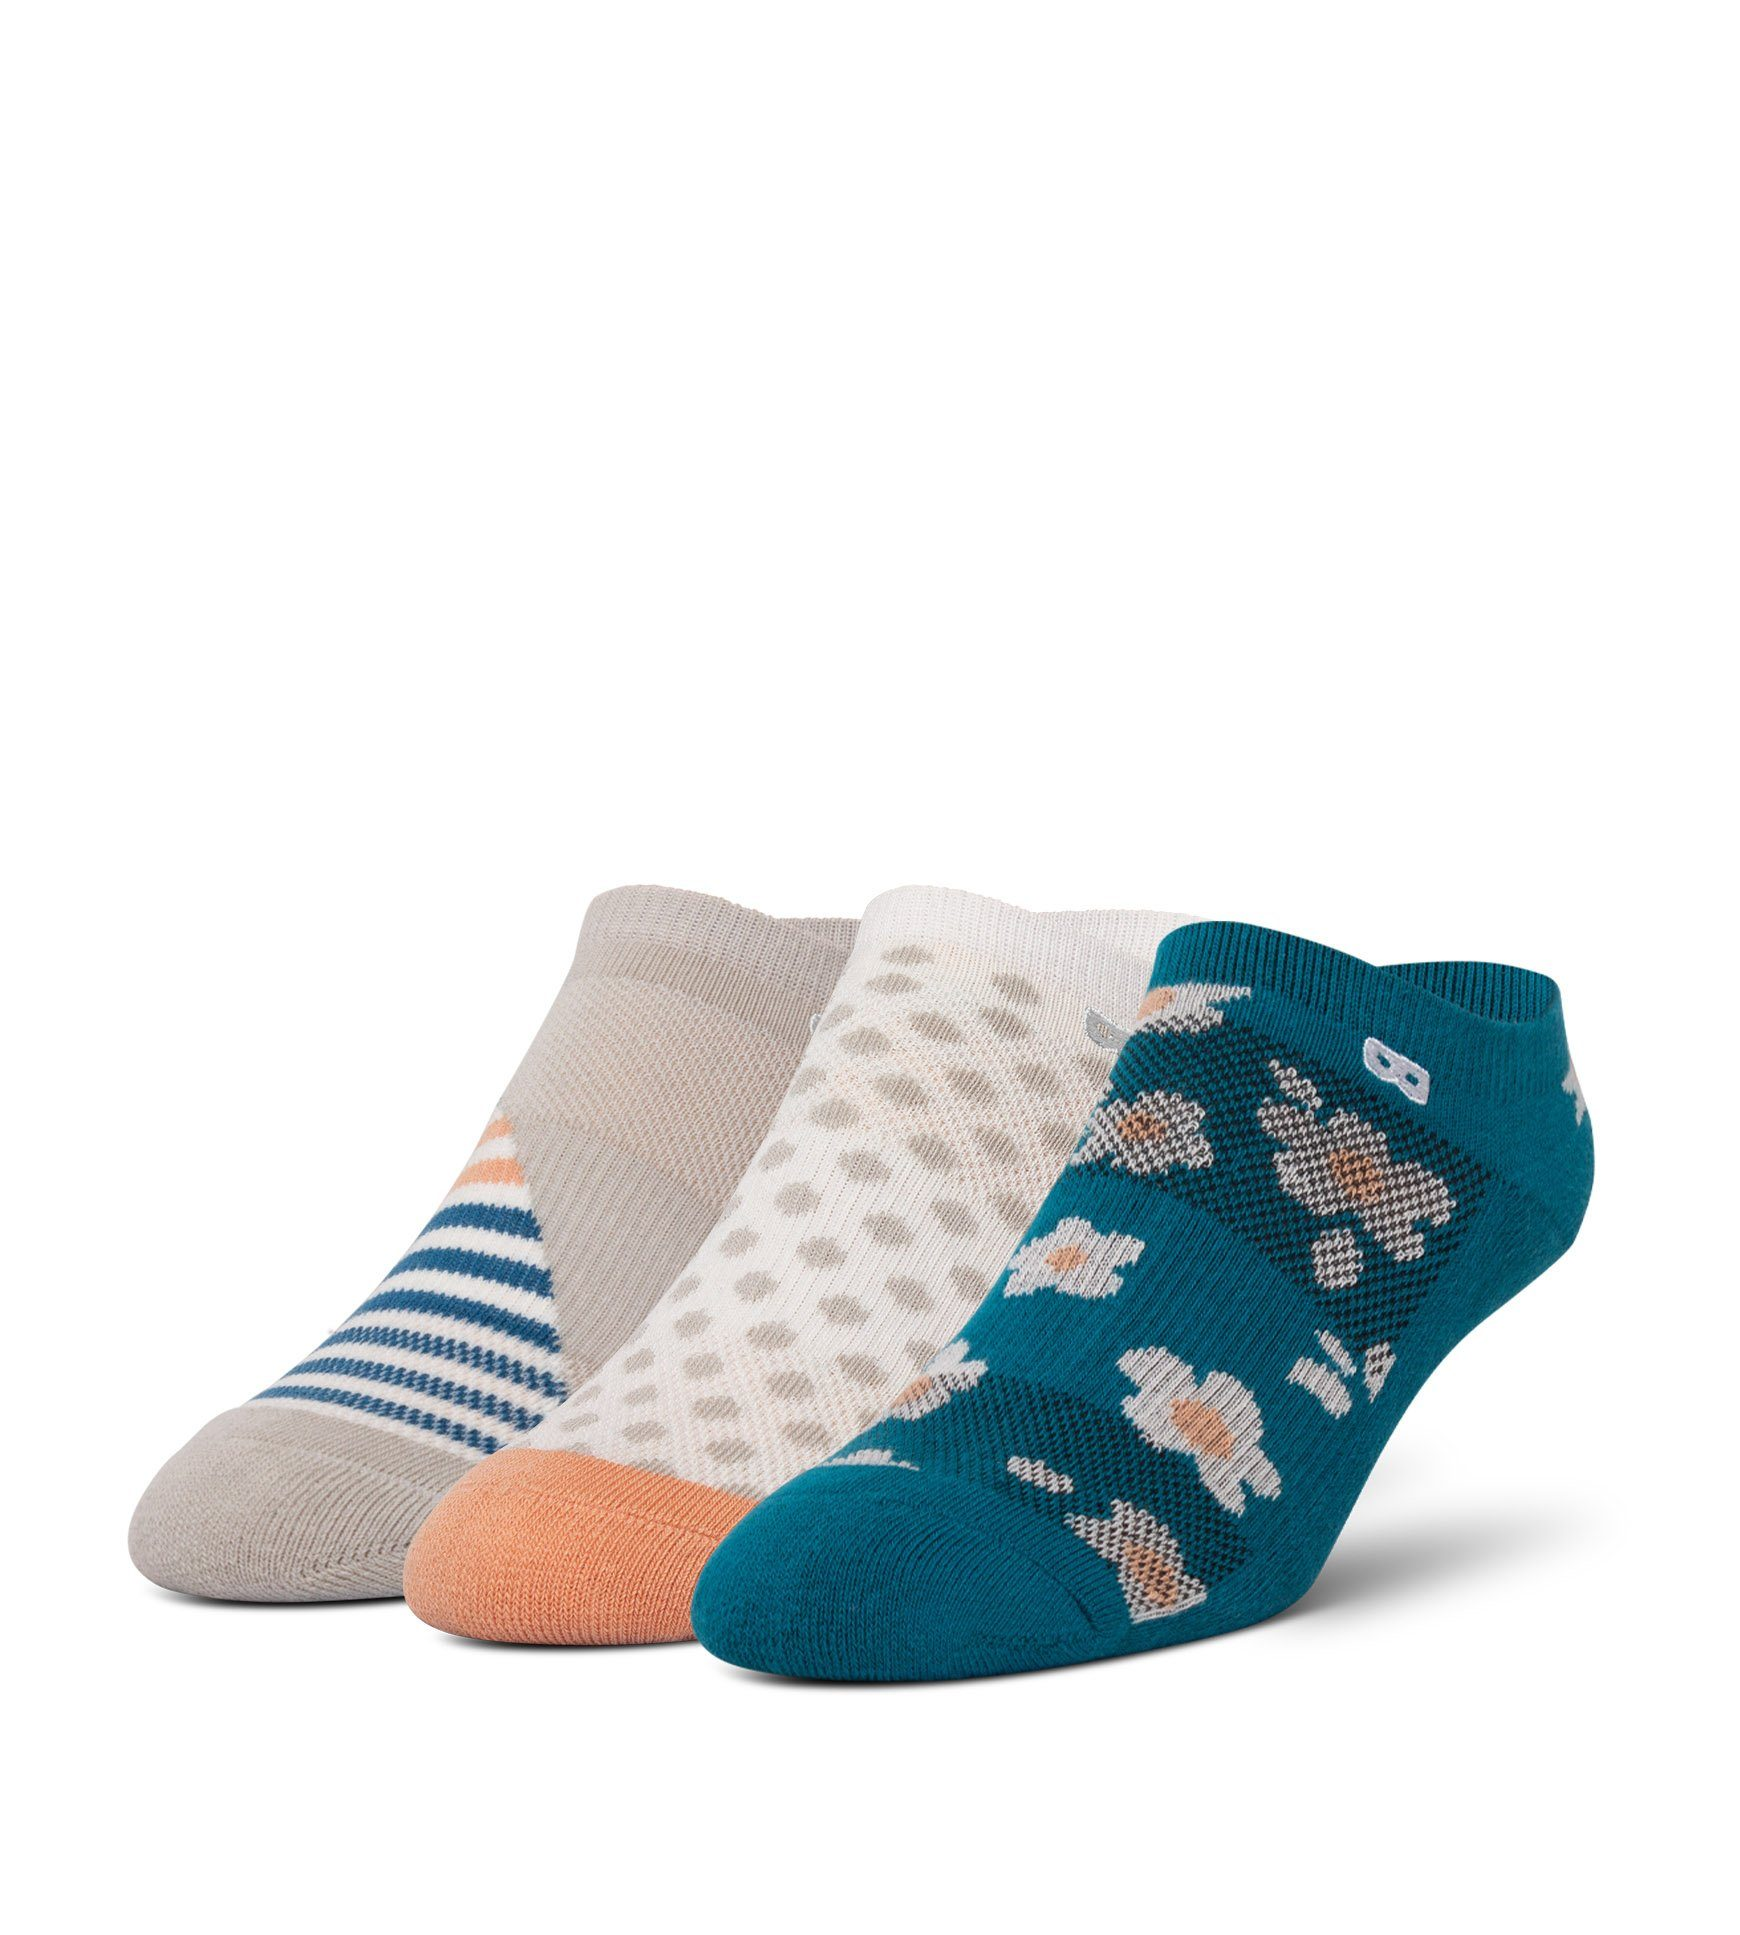 Evie Ethel Garland Women's Cushion Low-Cut Socks 3 Pack